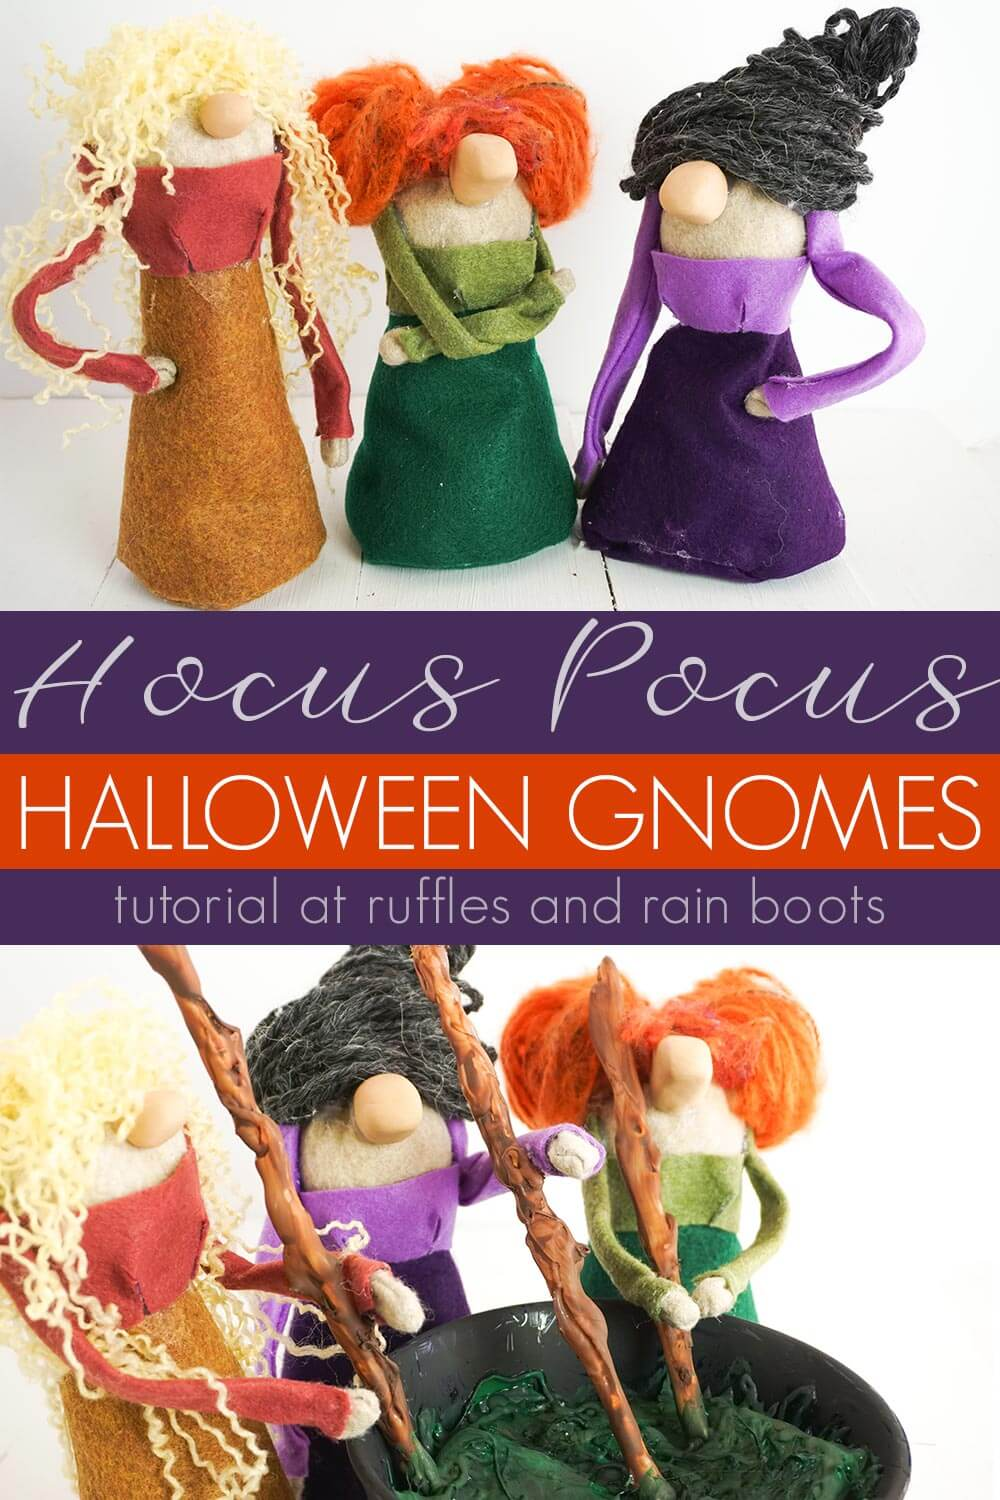 photo collage of Halloween Gnomes Sanderson Sisters Hocus Pocus with text which reads hocus pocus halloween gnomes